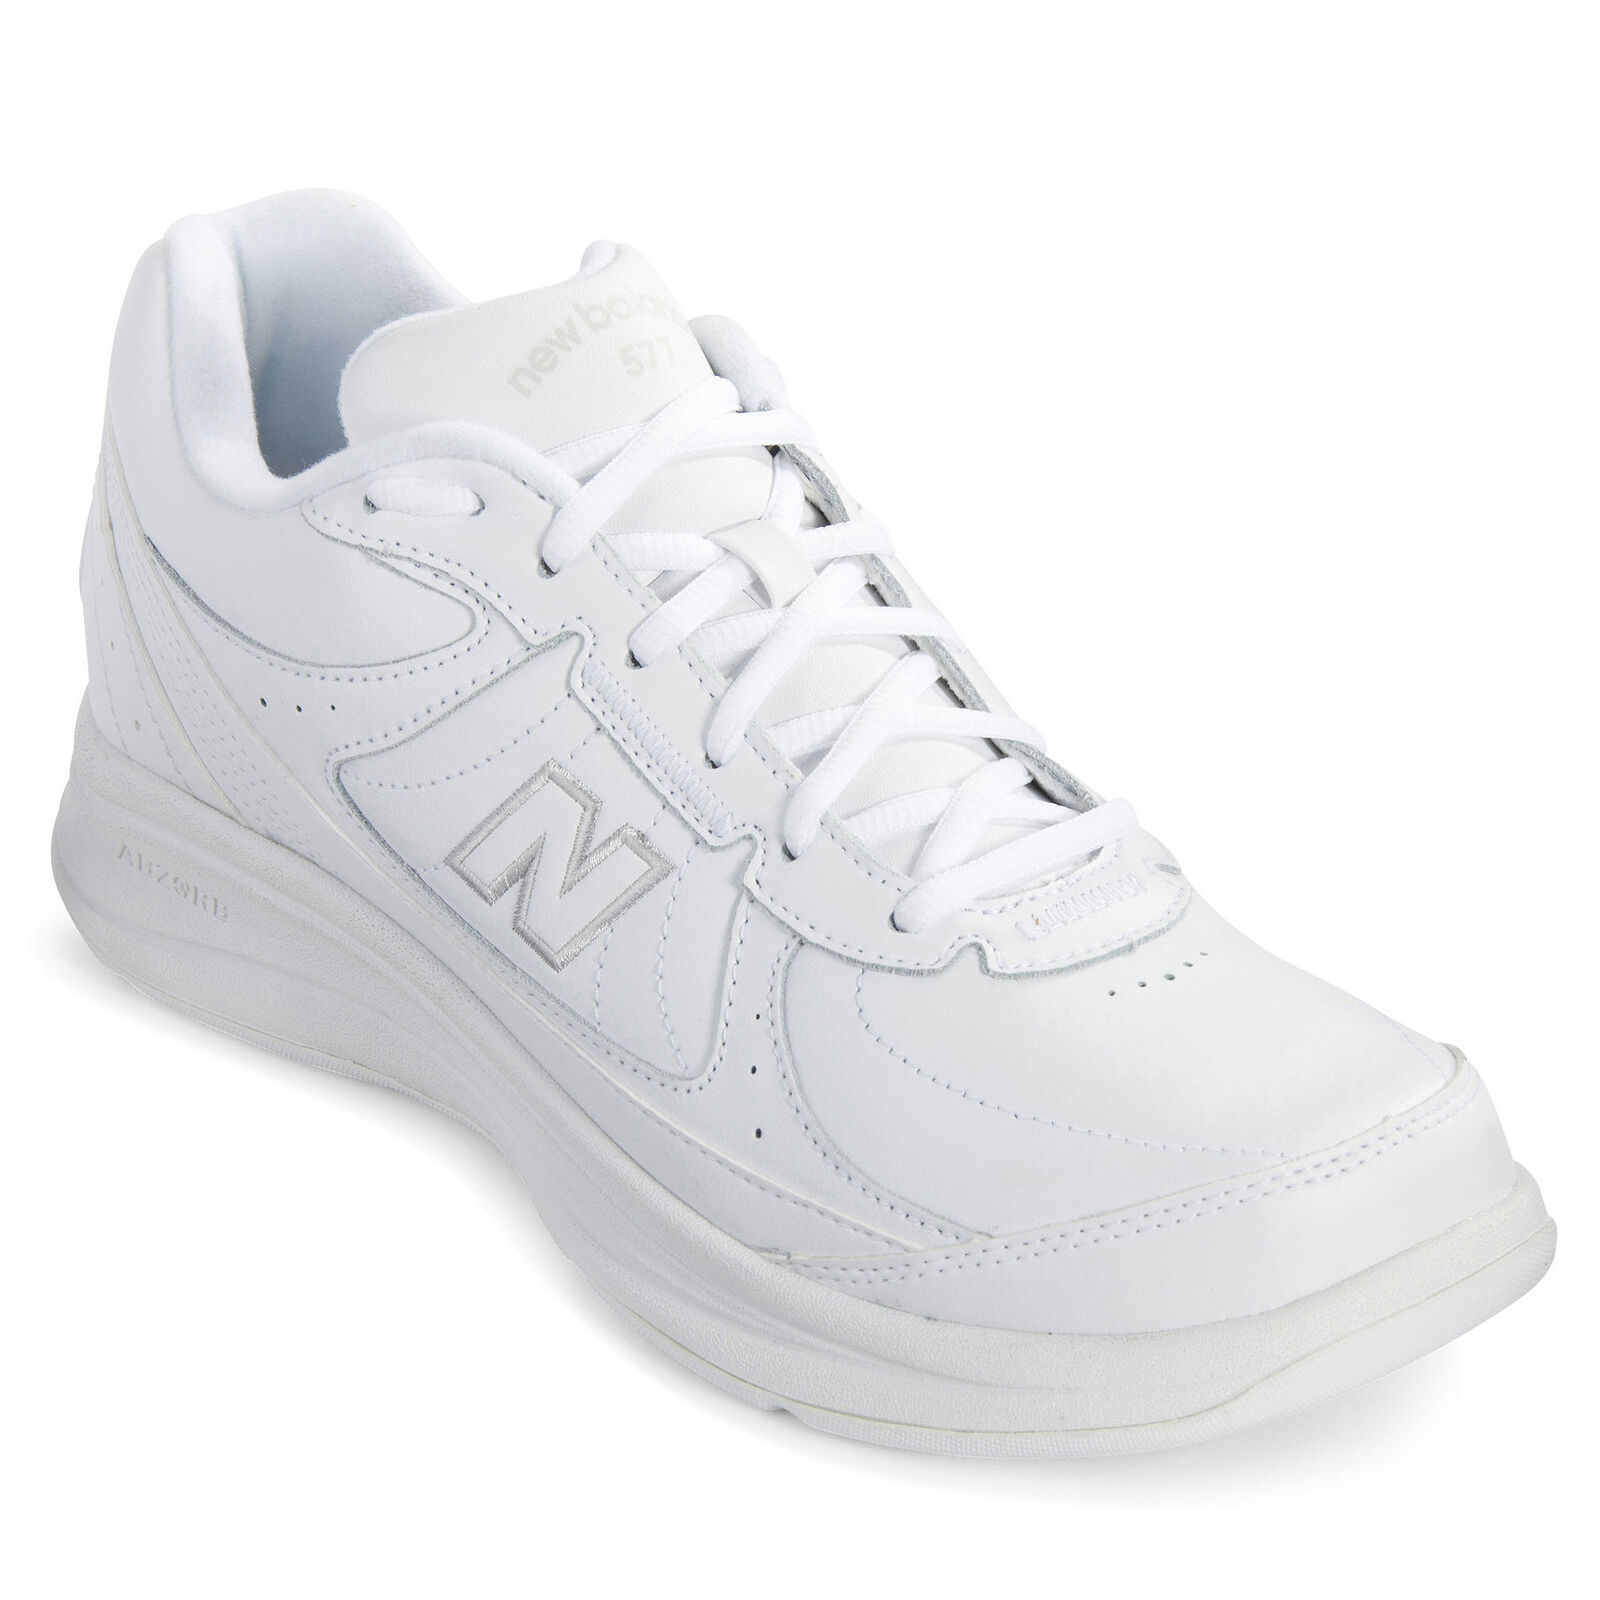 Men's New Balance Hook And Loop 577 Shoes Wide 2E White